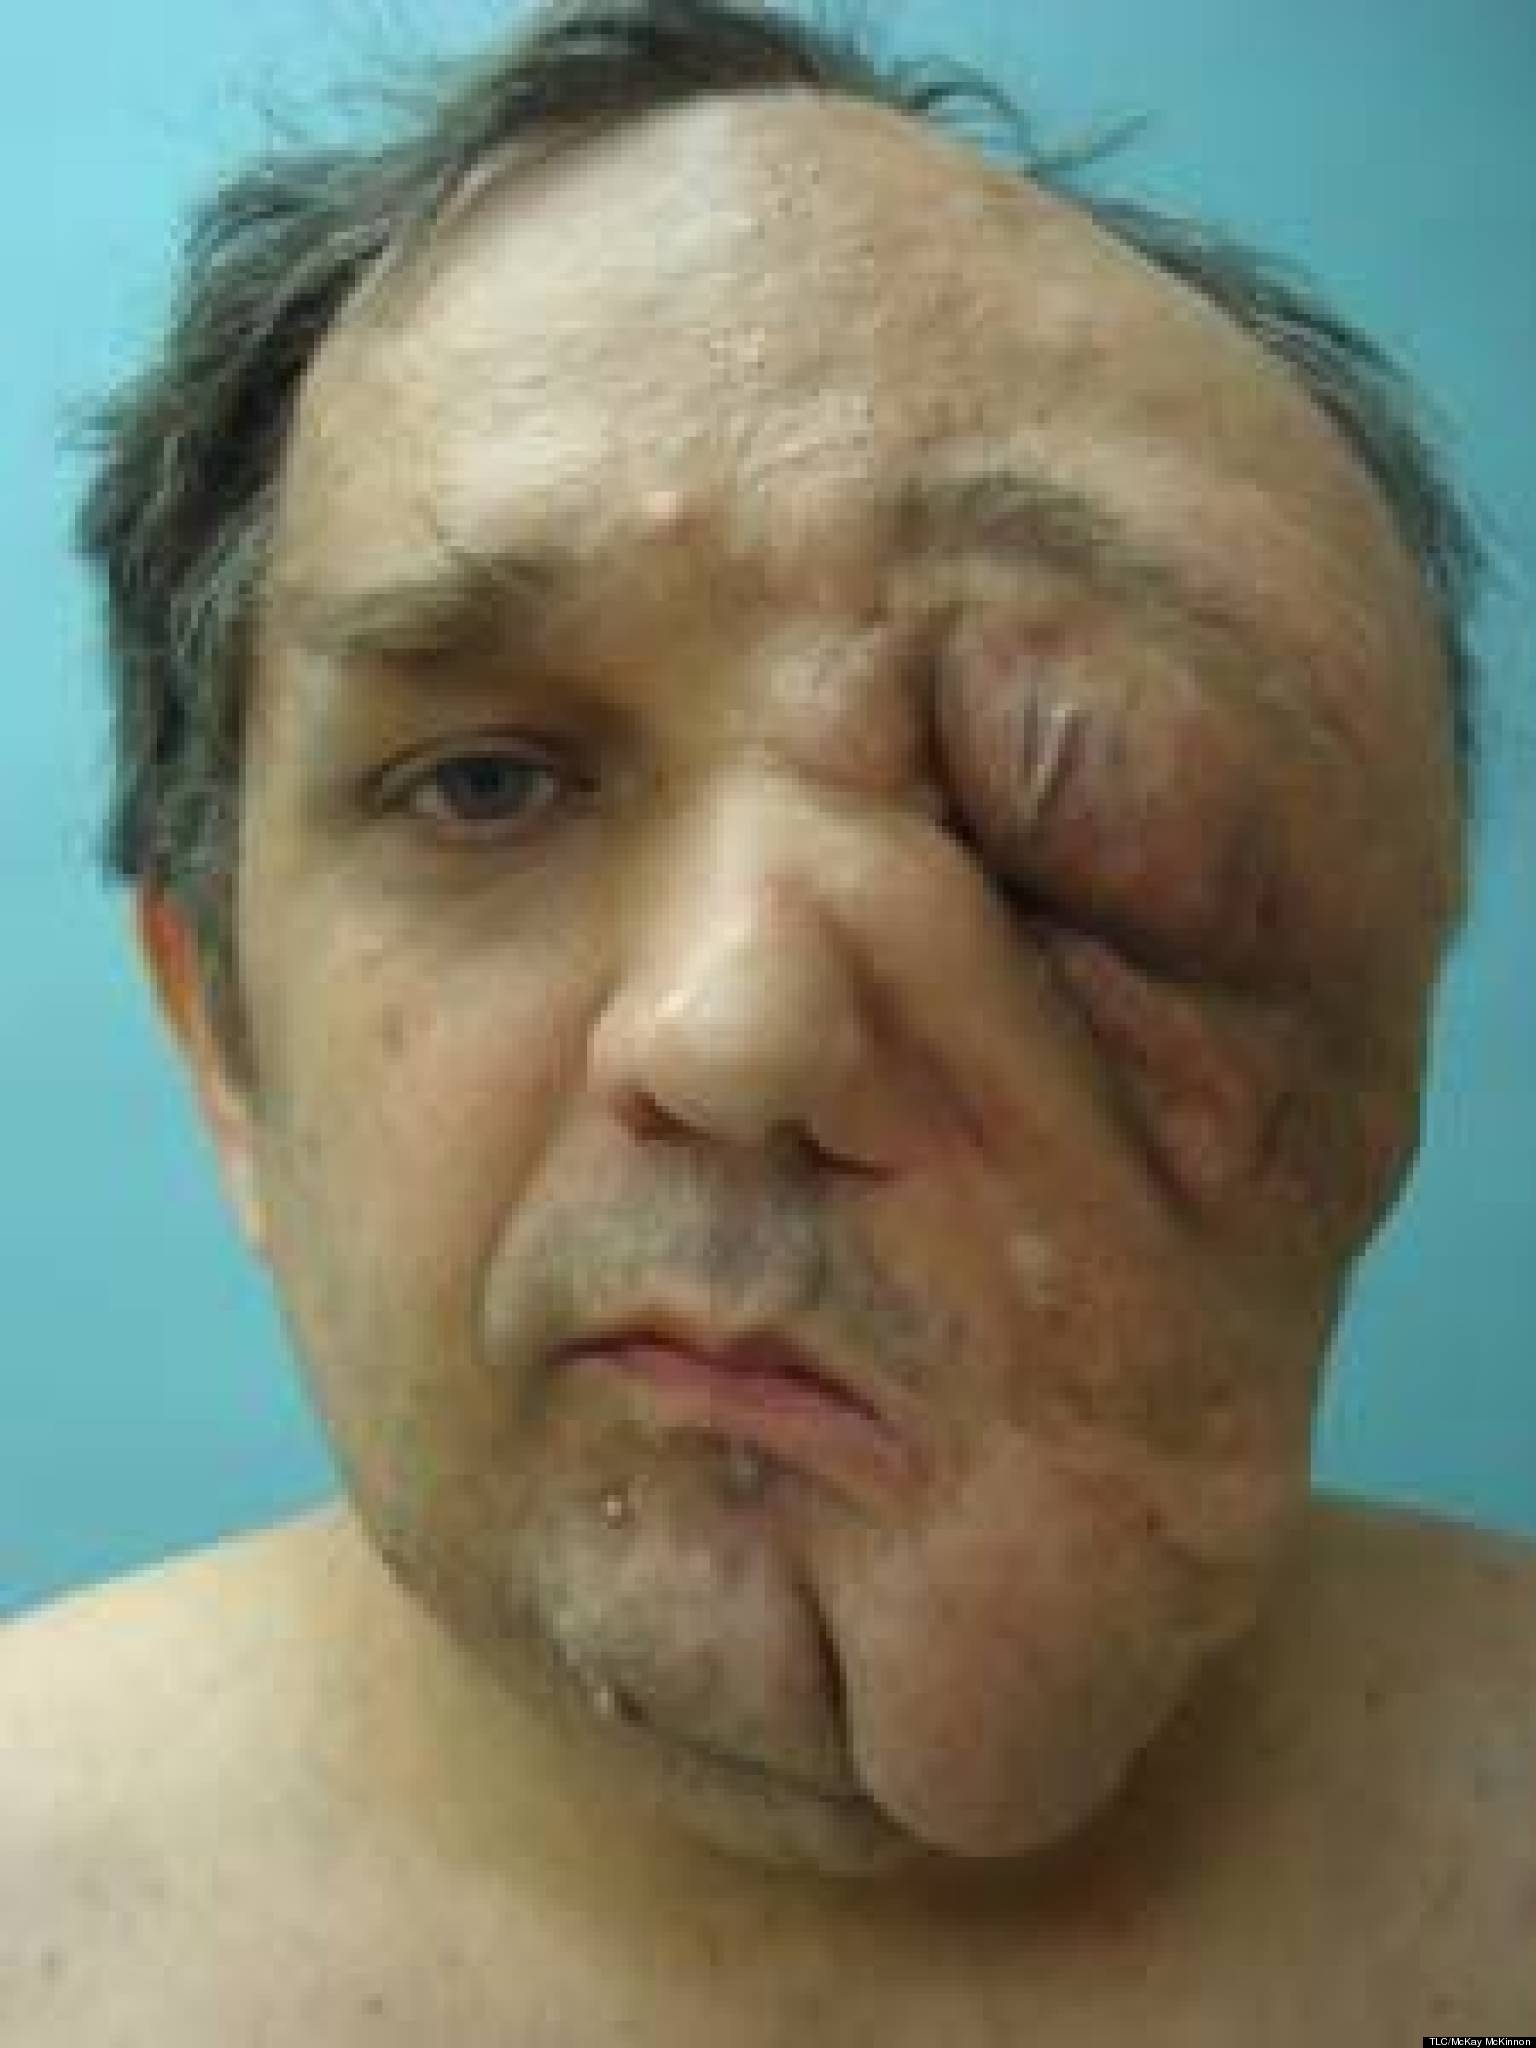 Man with giant facial tumor